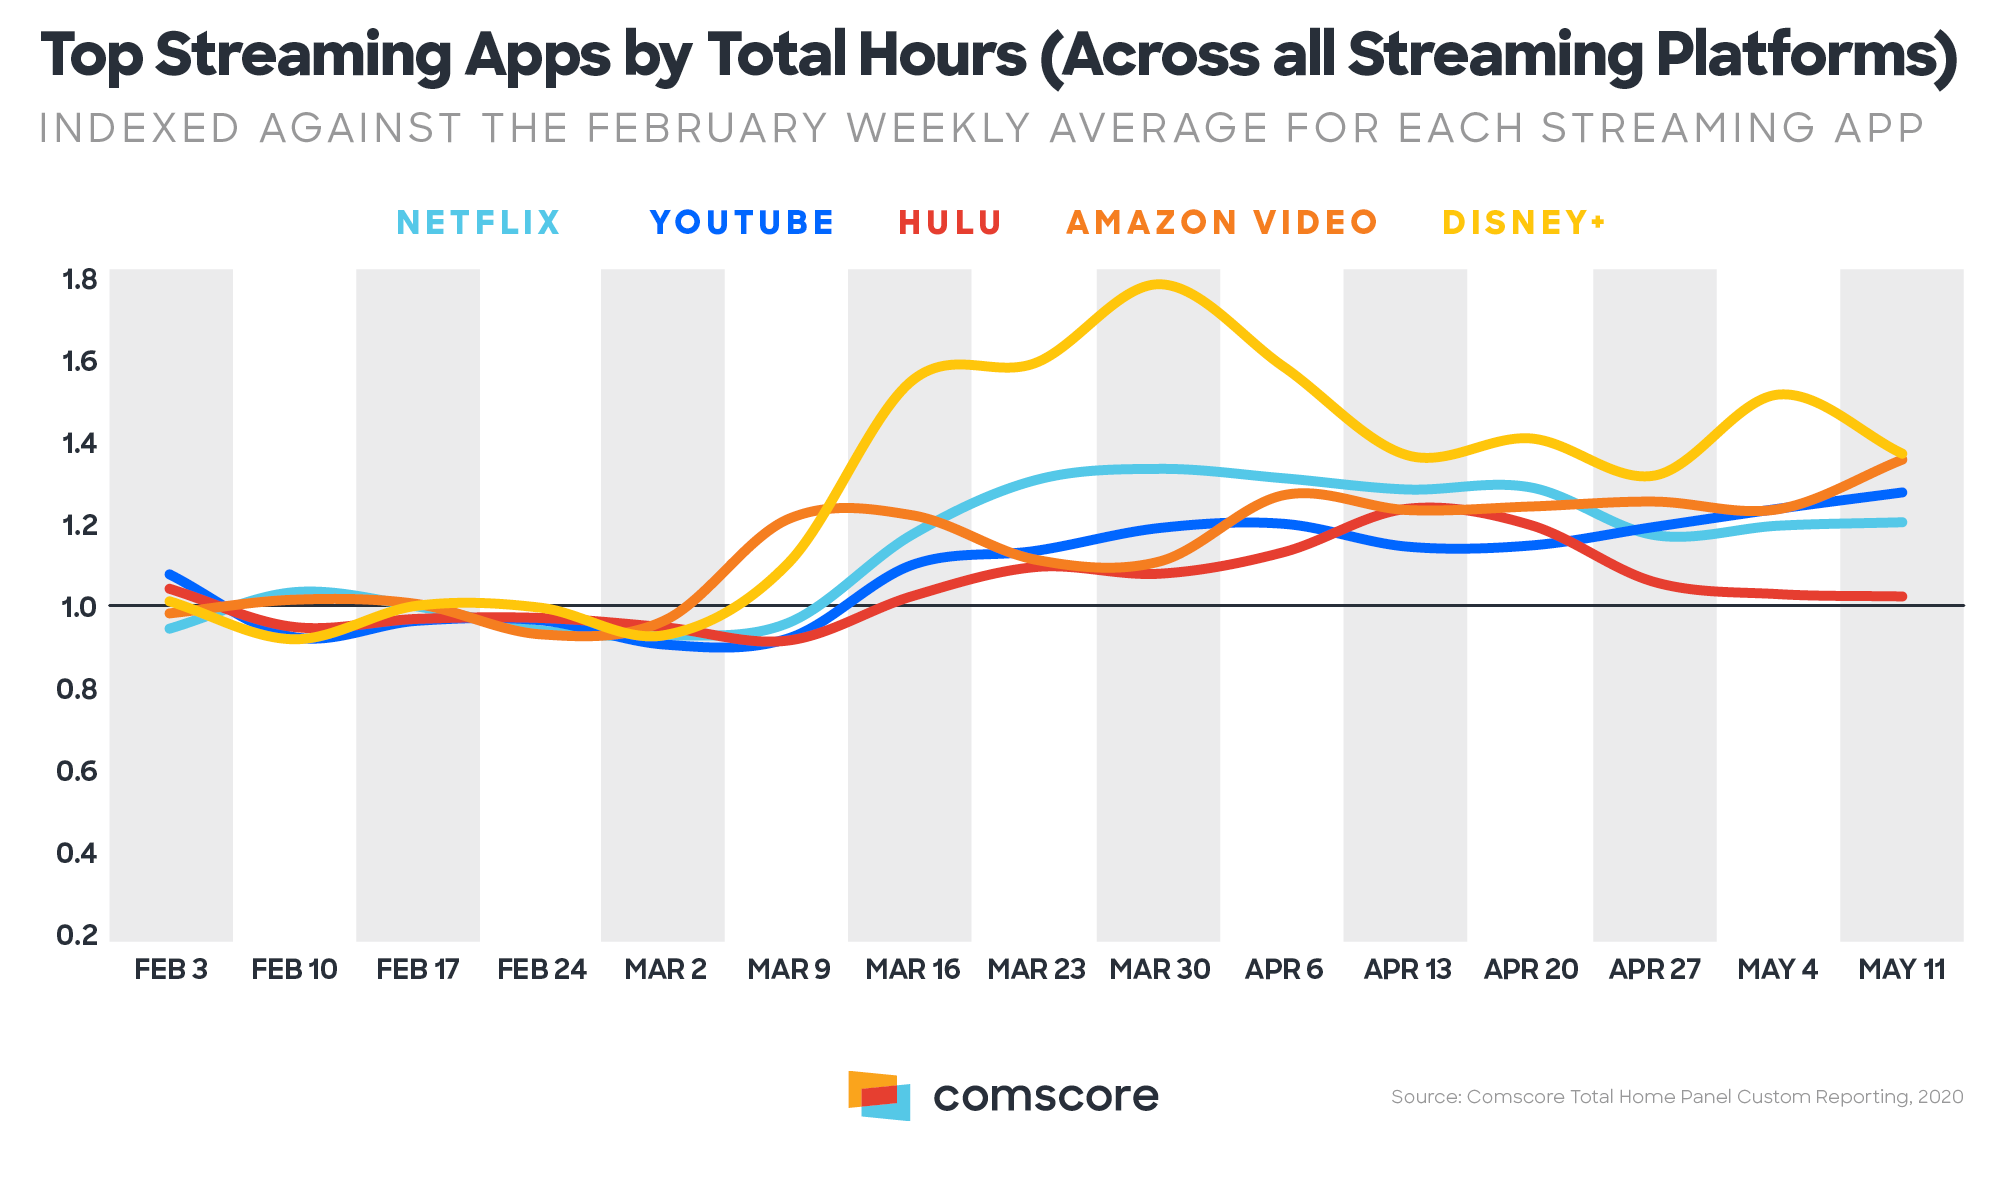 Top Streaming Apps by Total Hours